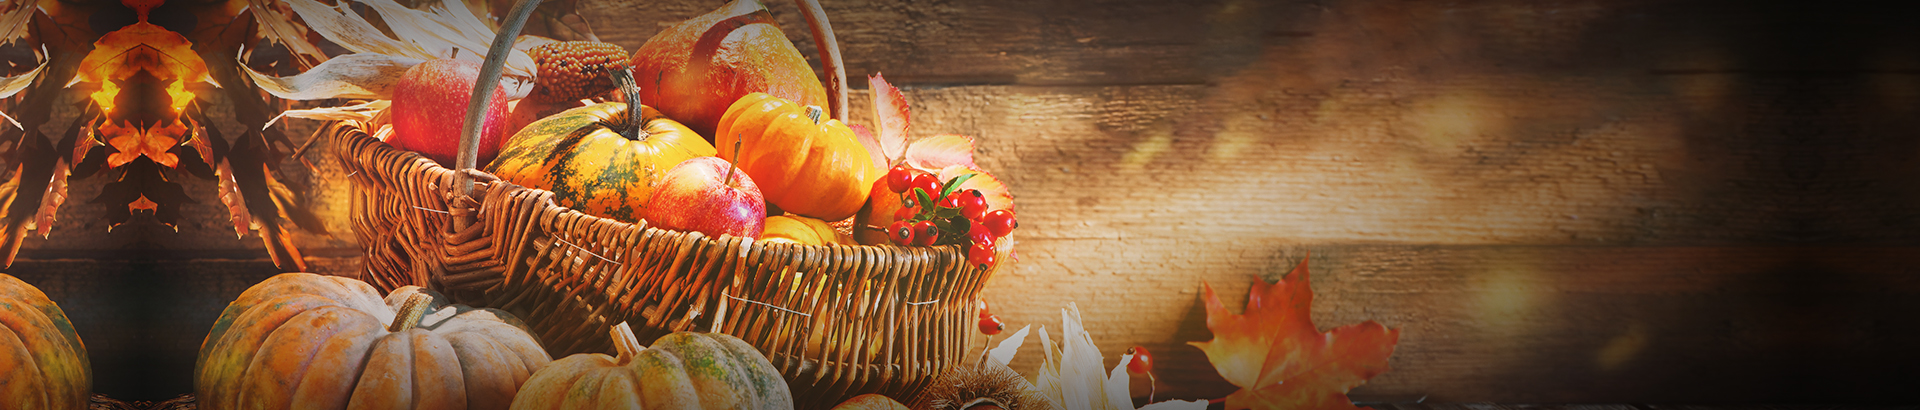 Celebrate Thanksgiving with Endless Entertainment in Orlando